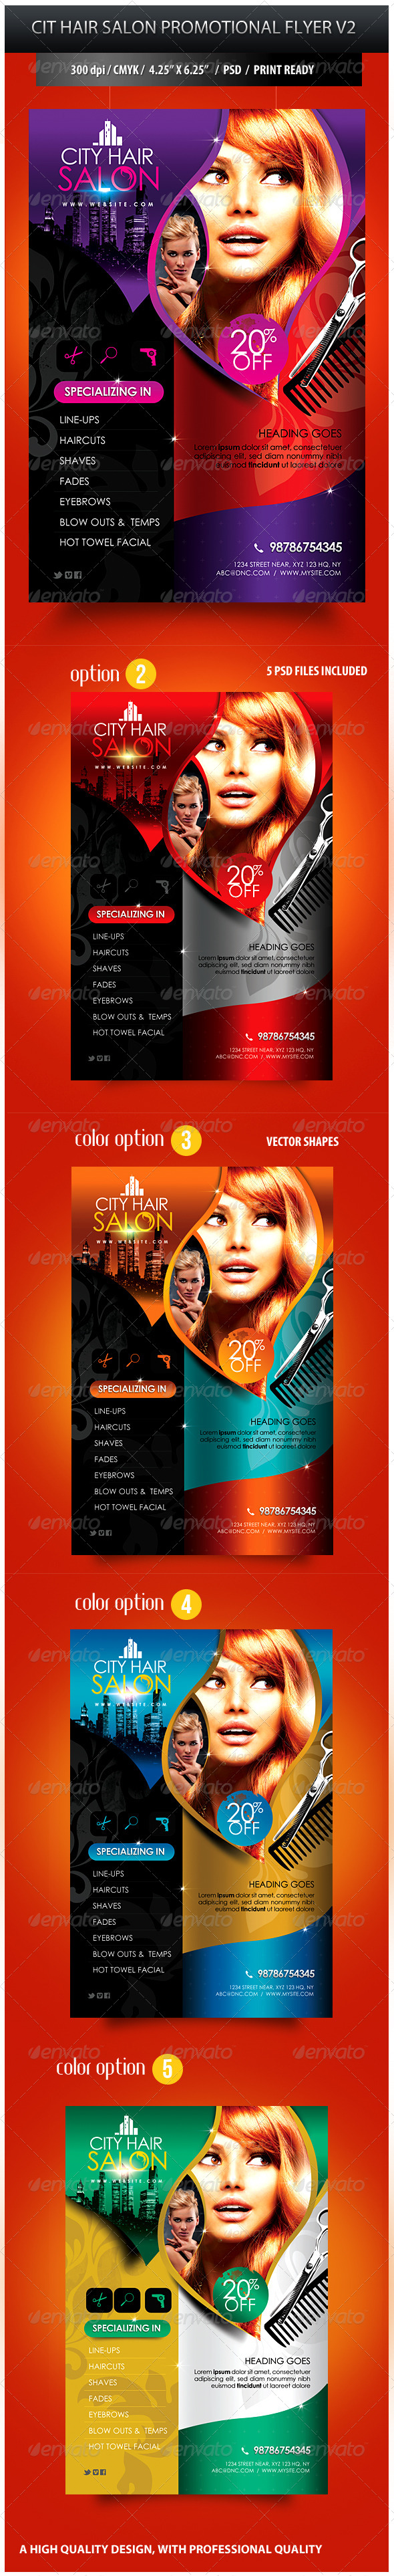 GraphicRiver City Hair Salon Promotional Flyer V2 5173711